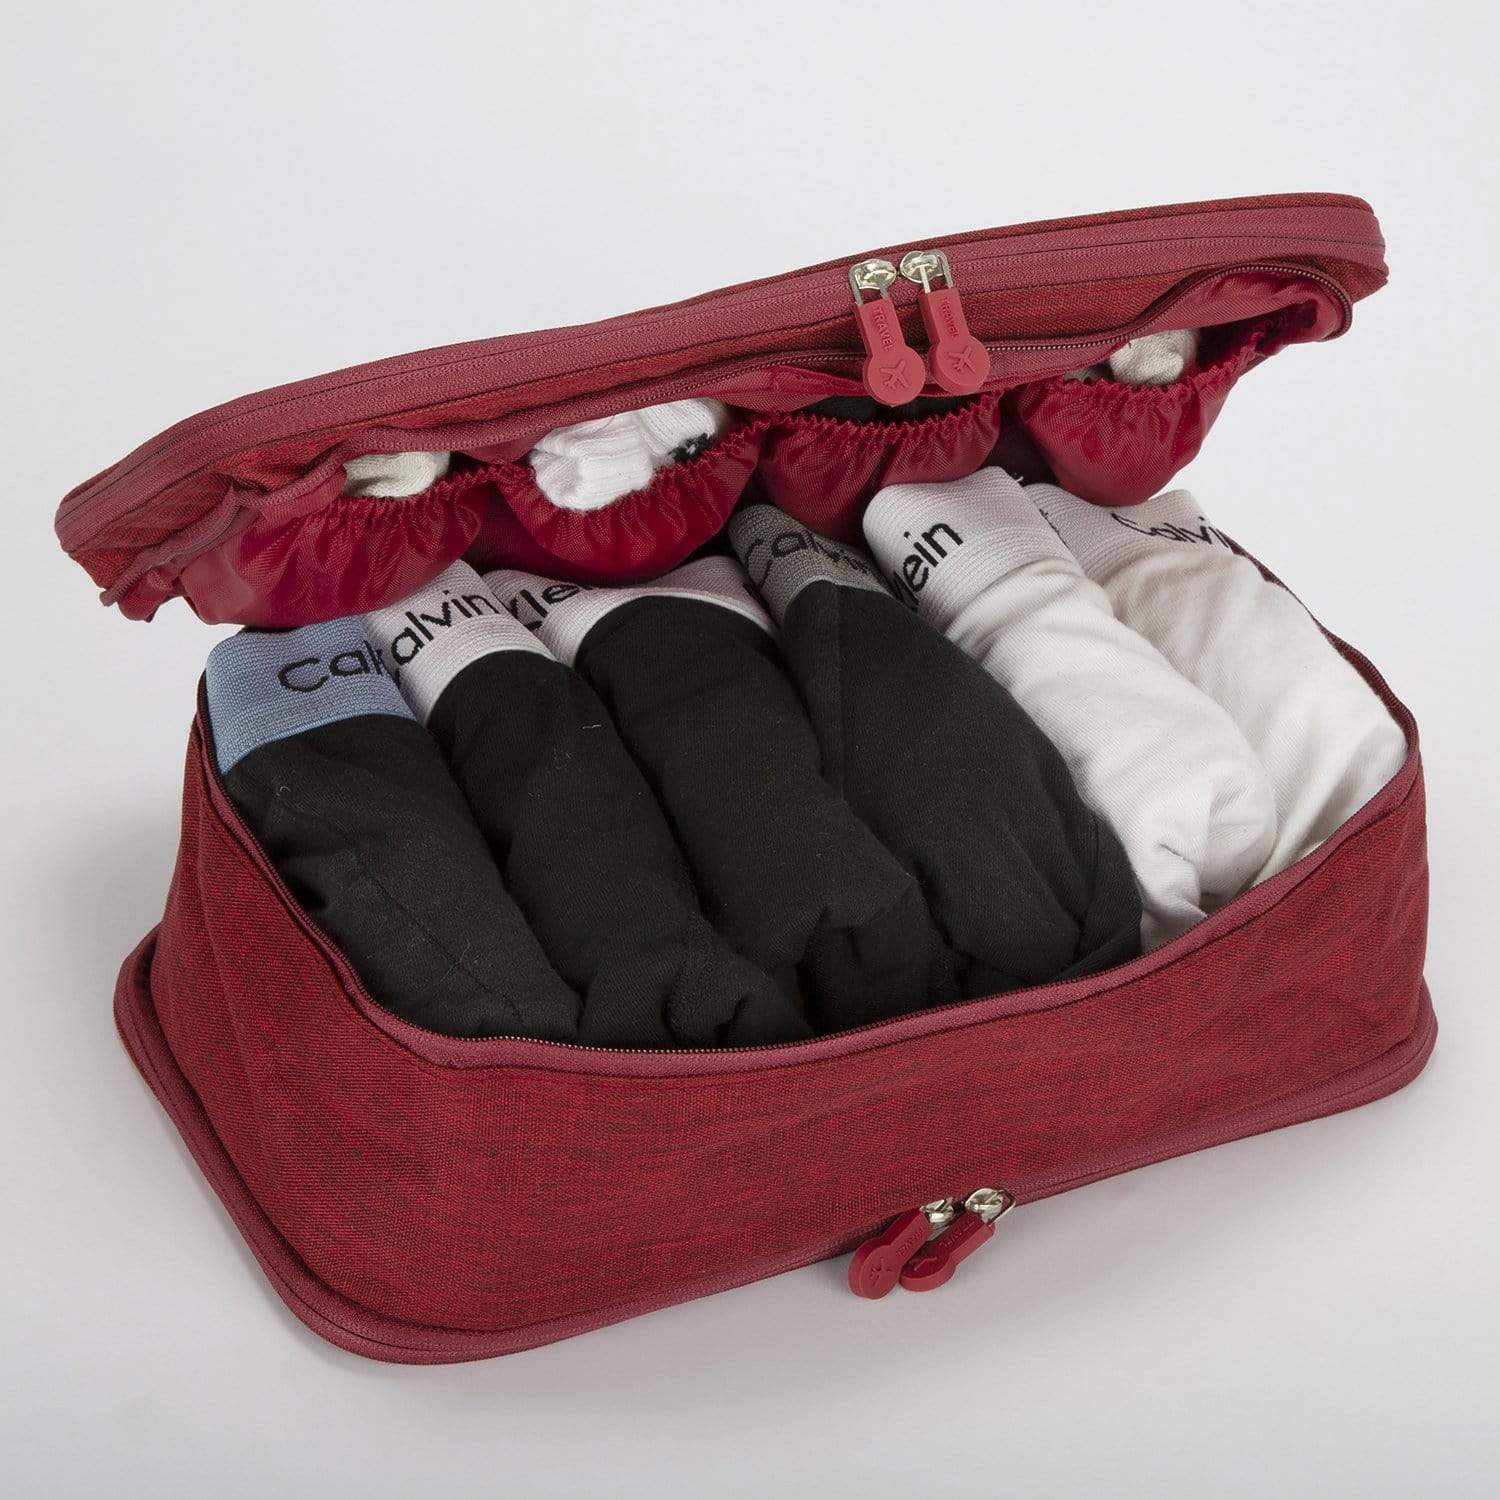 Essentials Travel Bag - Red - only5pounds.com